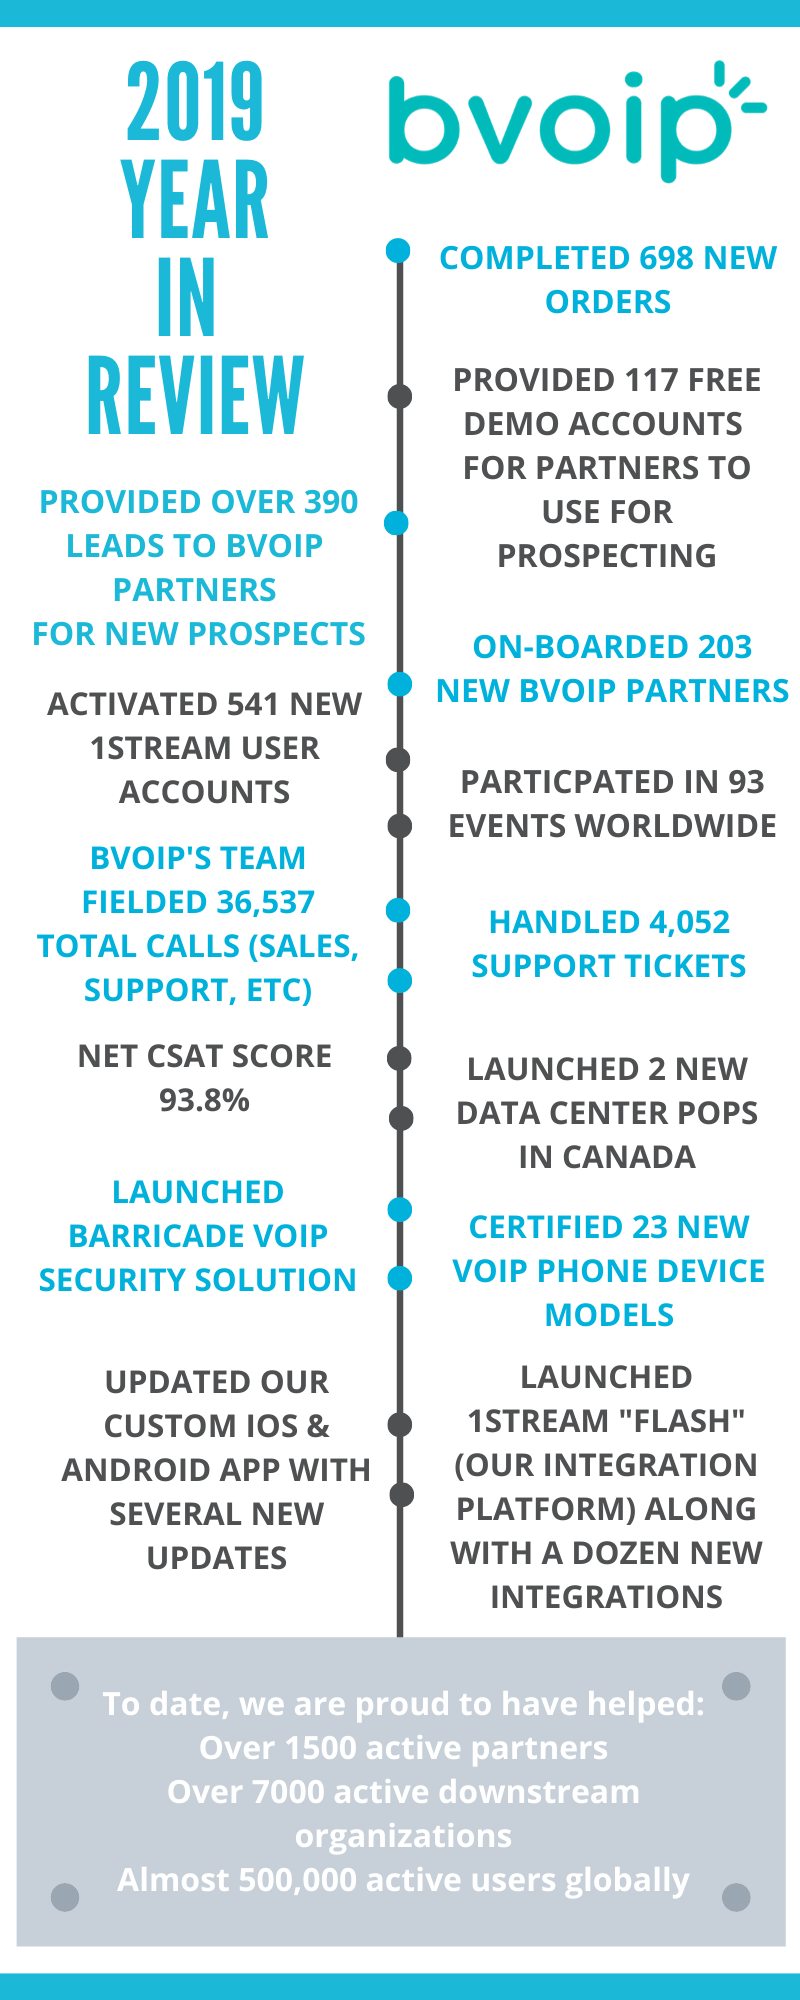 bvoip 2019 year in review 1